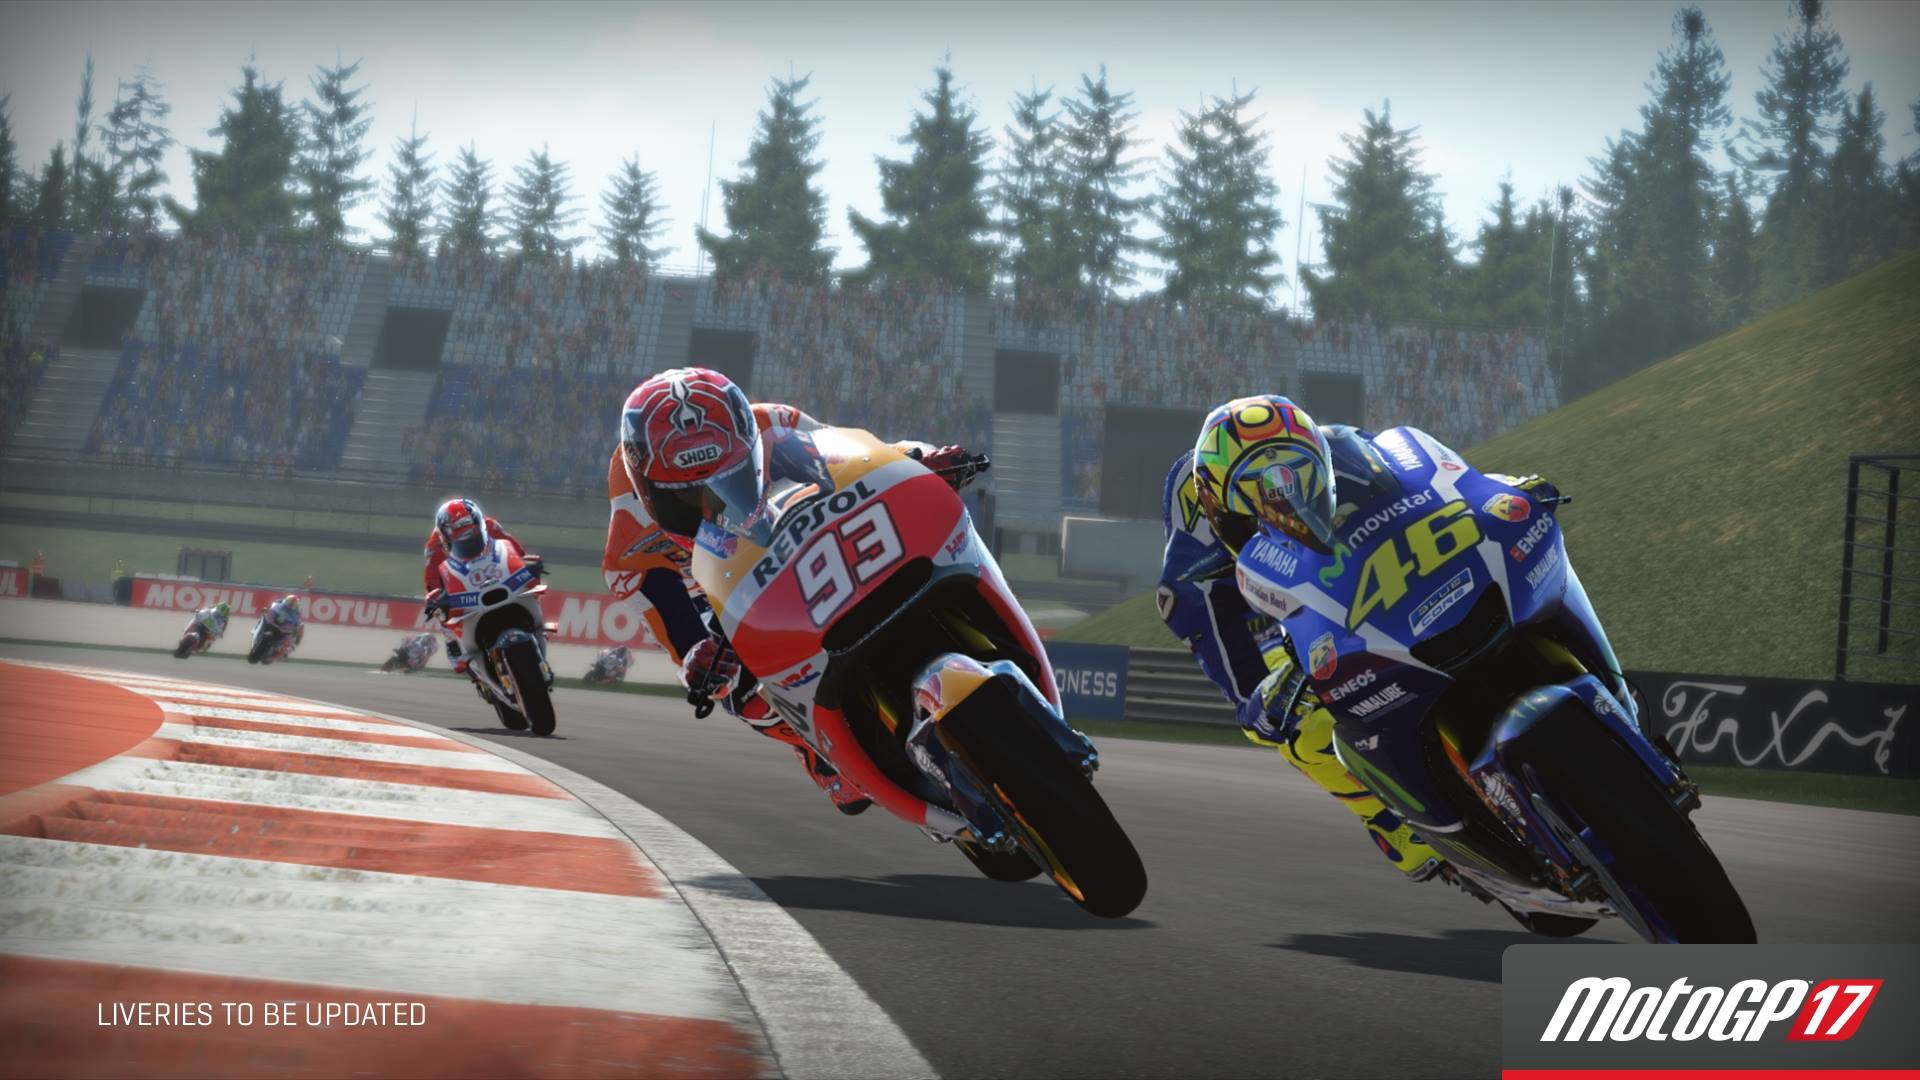 MotoGP 17 Runs at 1440P@60FPS on PS4 Pro, Though There's No Downsampling on HDTVs